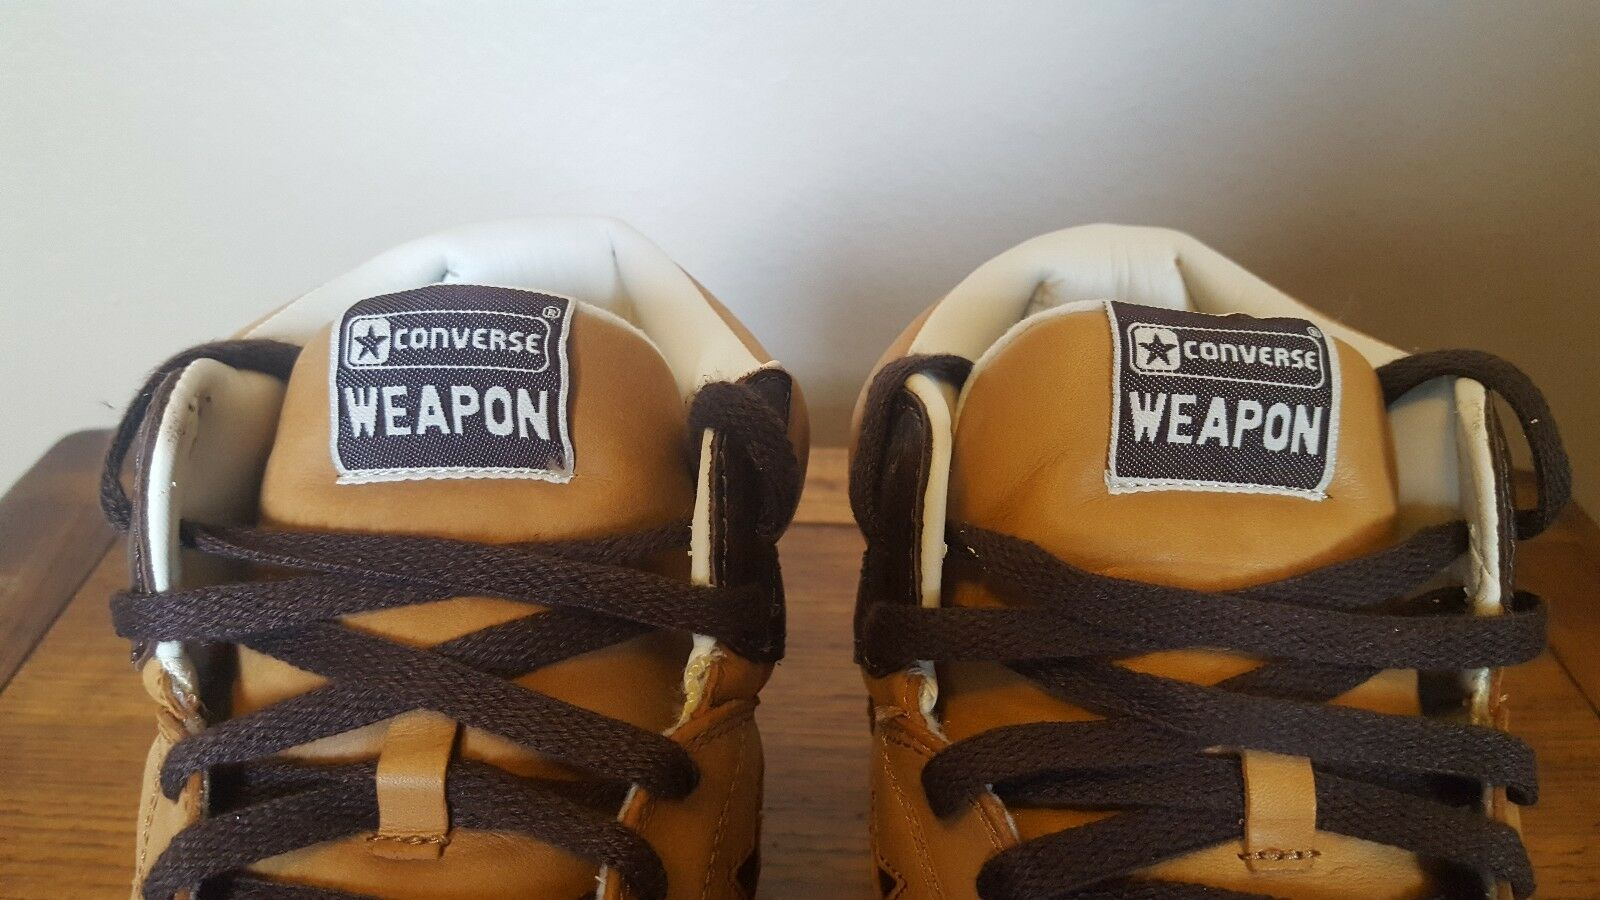 26155e08c2efbb Converse Weapon Brown   Ostrich Basketball Shoes Size 11.5 for sale online